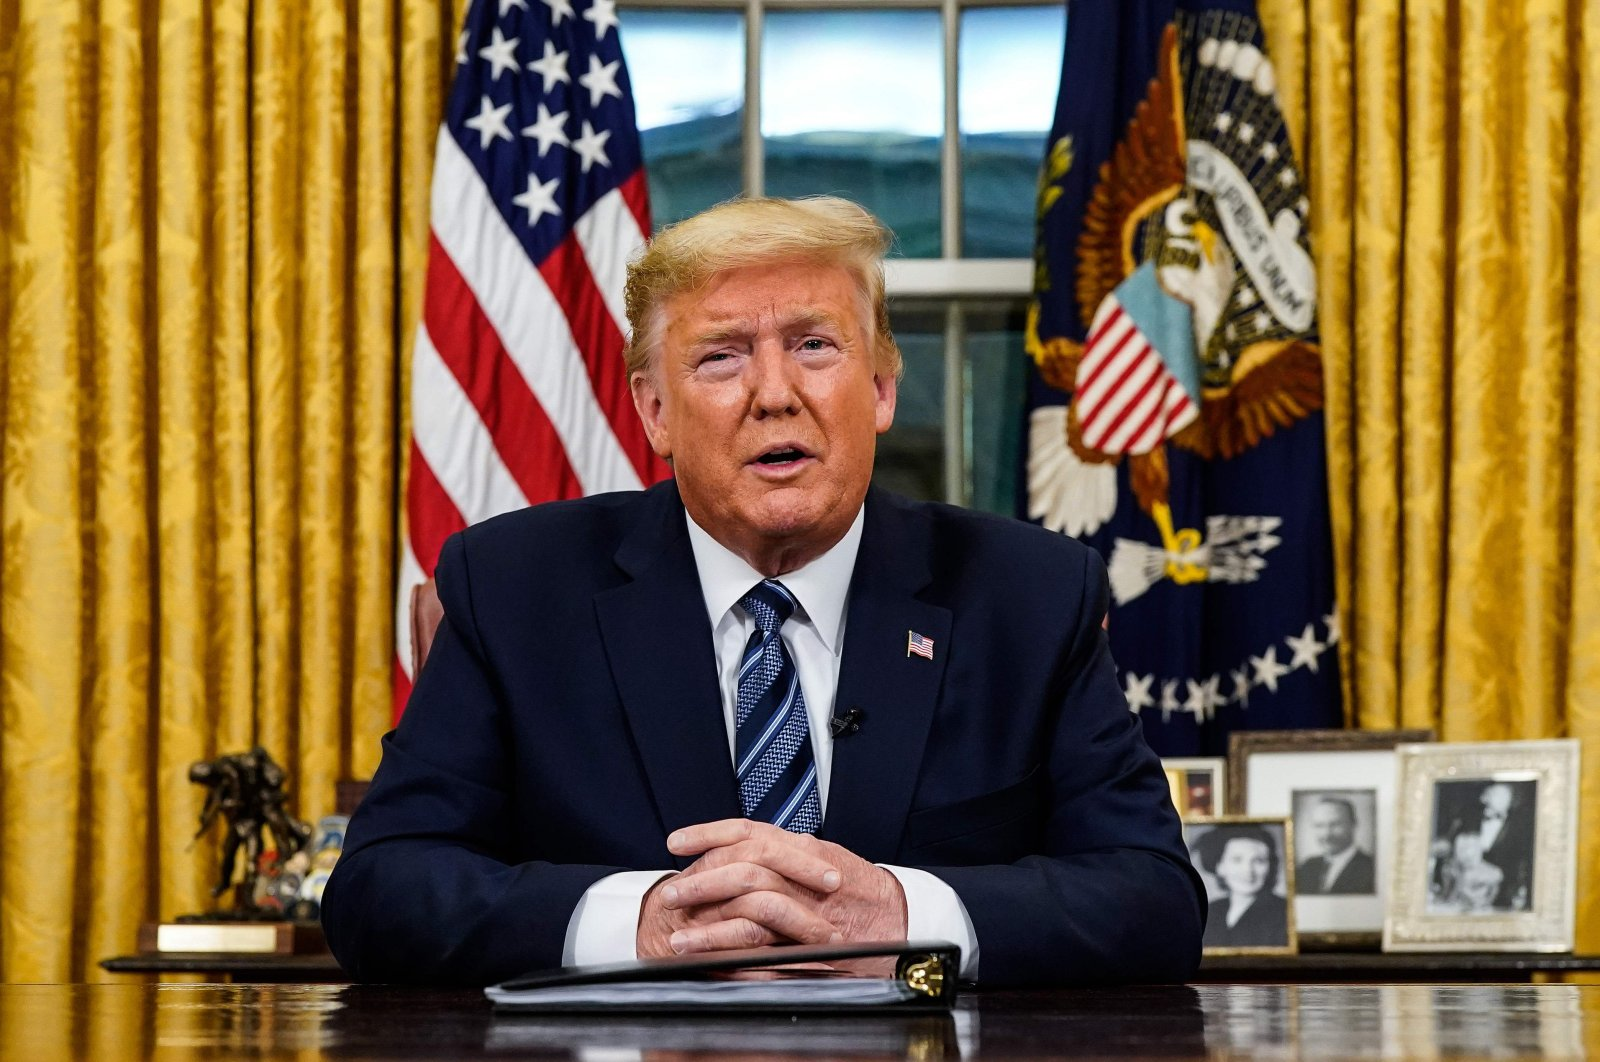 U.S. President Donald Trump addresses the nation from the Oval Office about the widening novel coronavirus crisis, in Washington, D.C. on March 11, 2020. (AFP Photo)